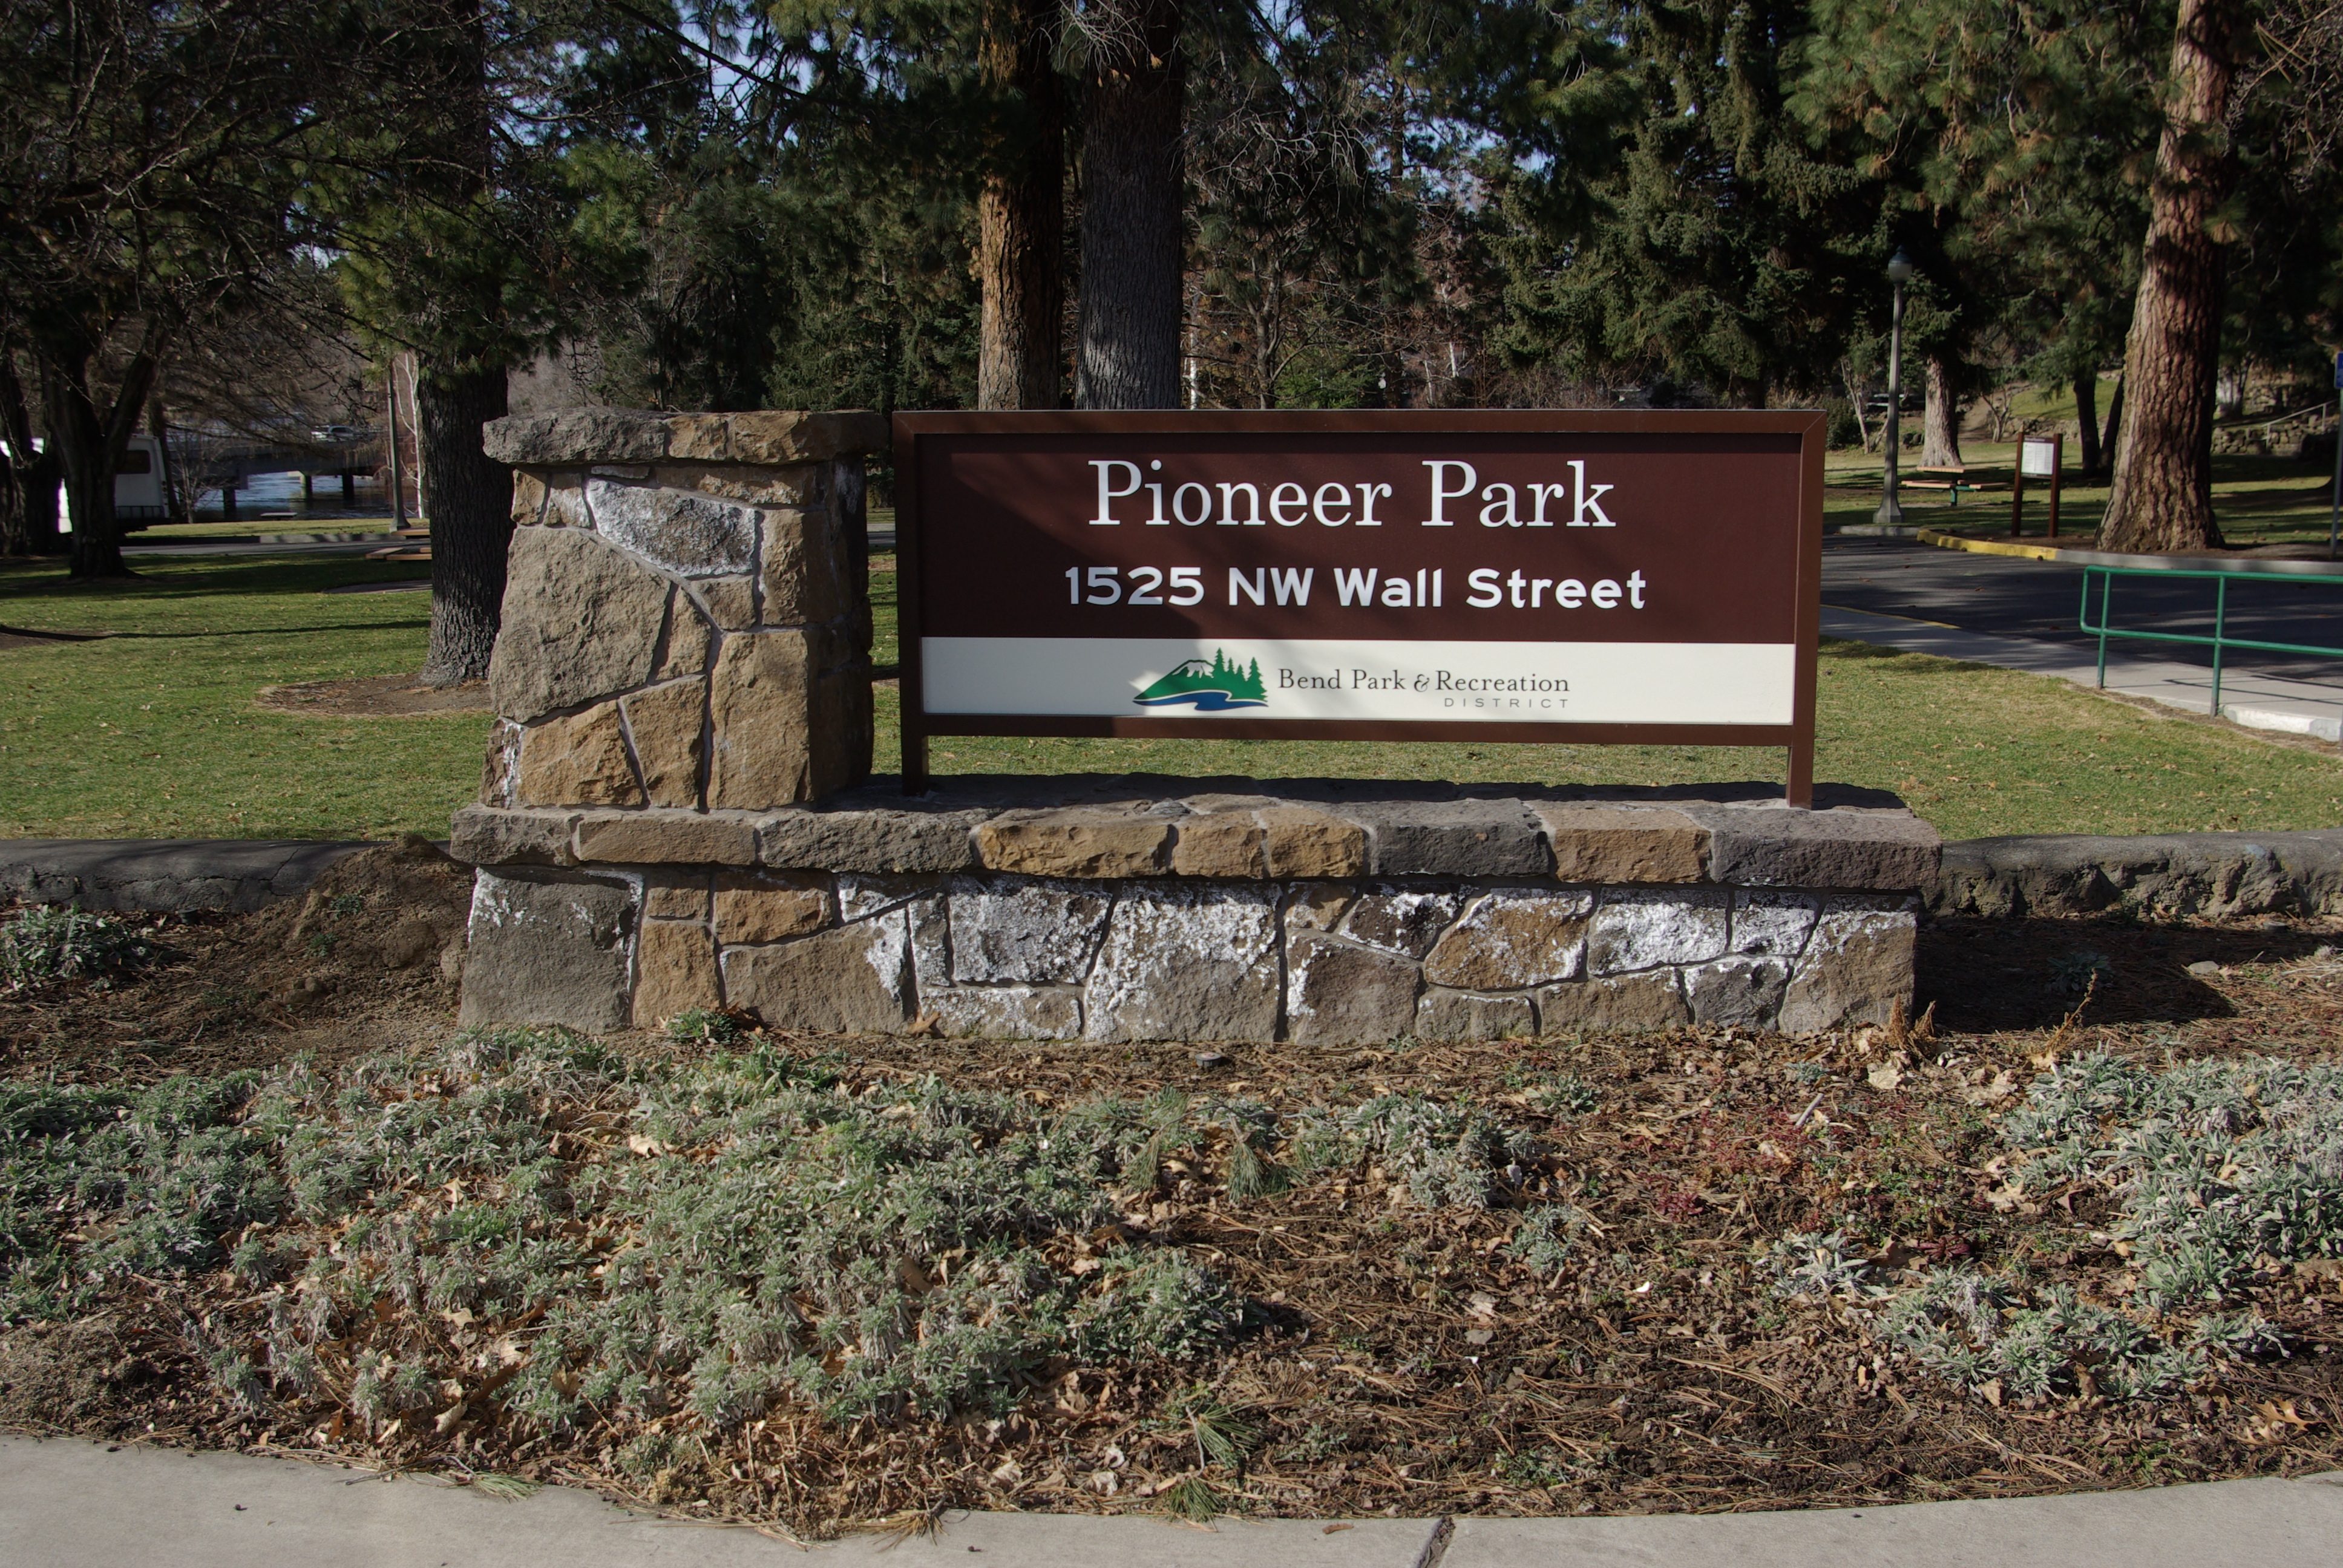 Image of Pioneer Park entrance.